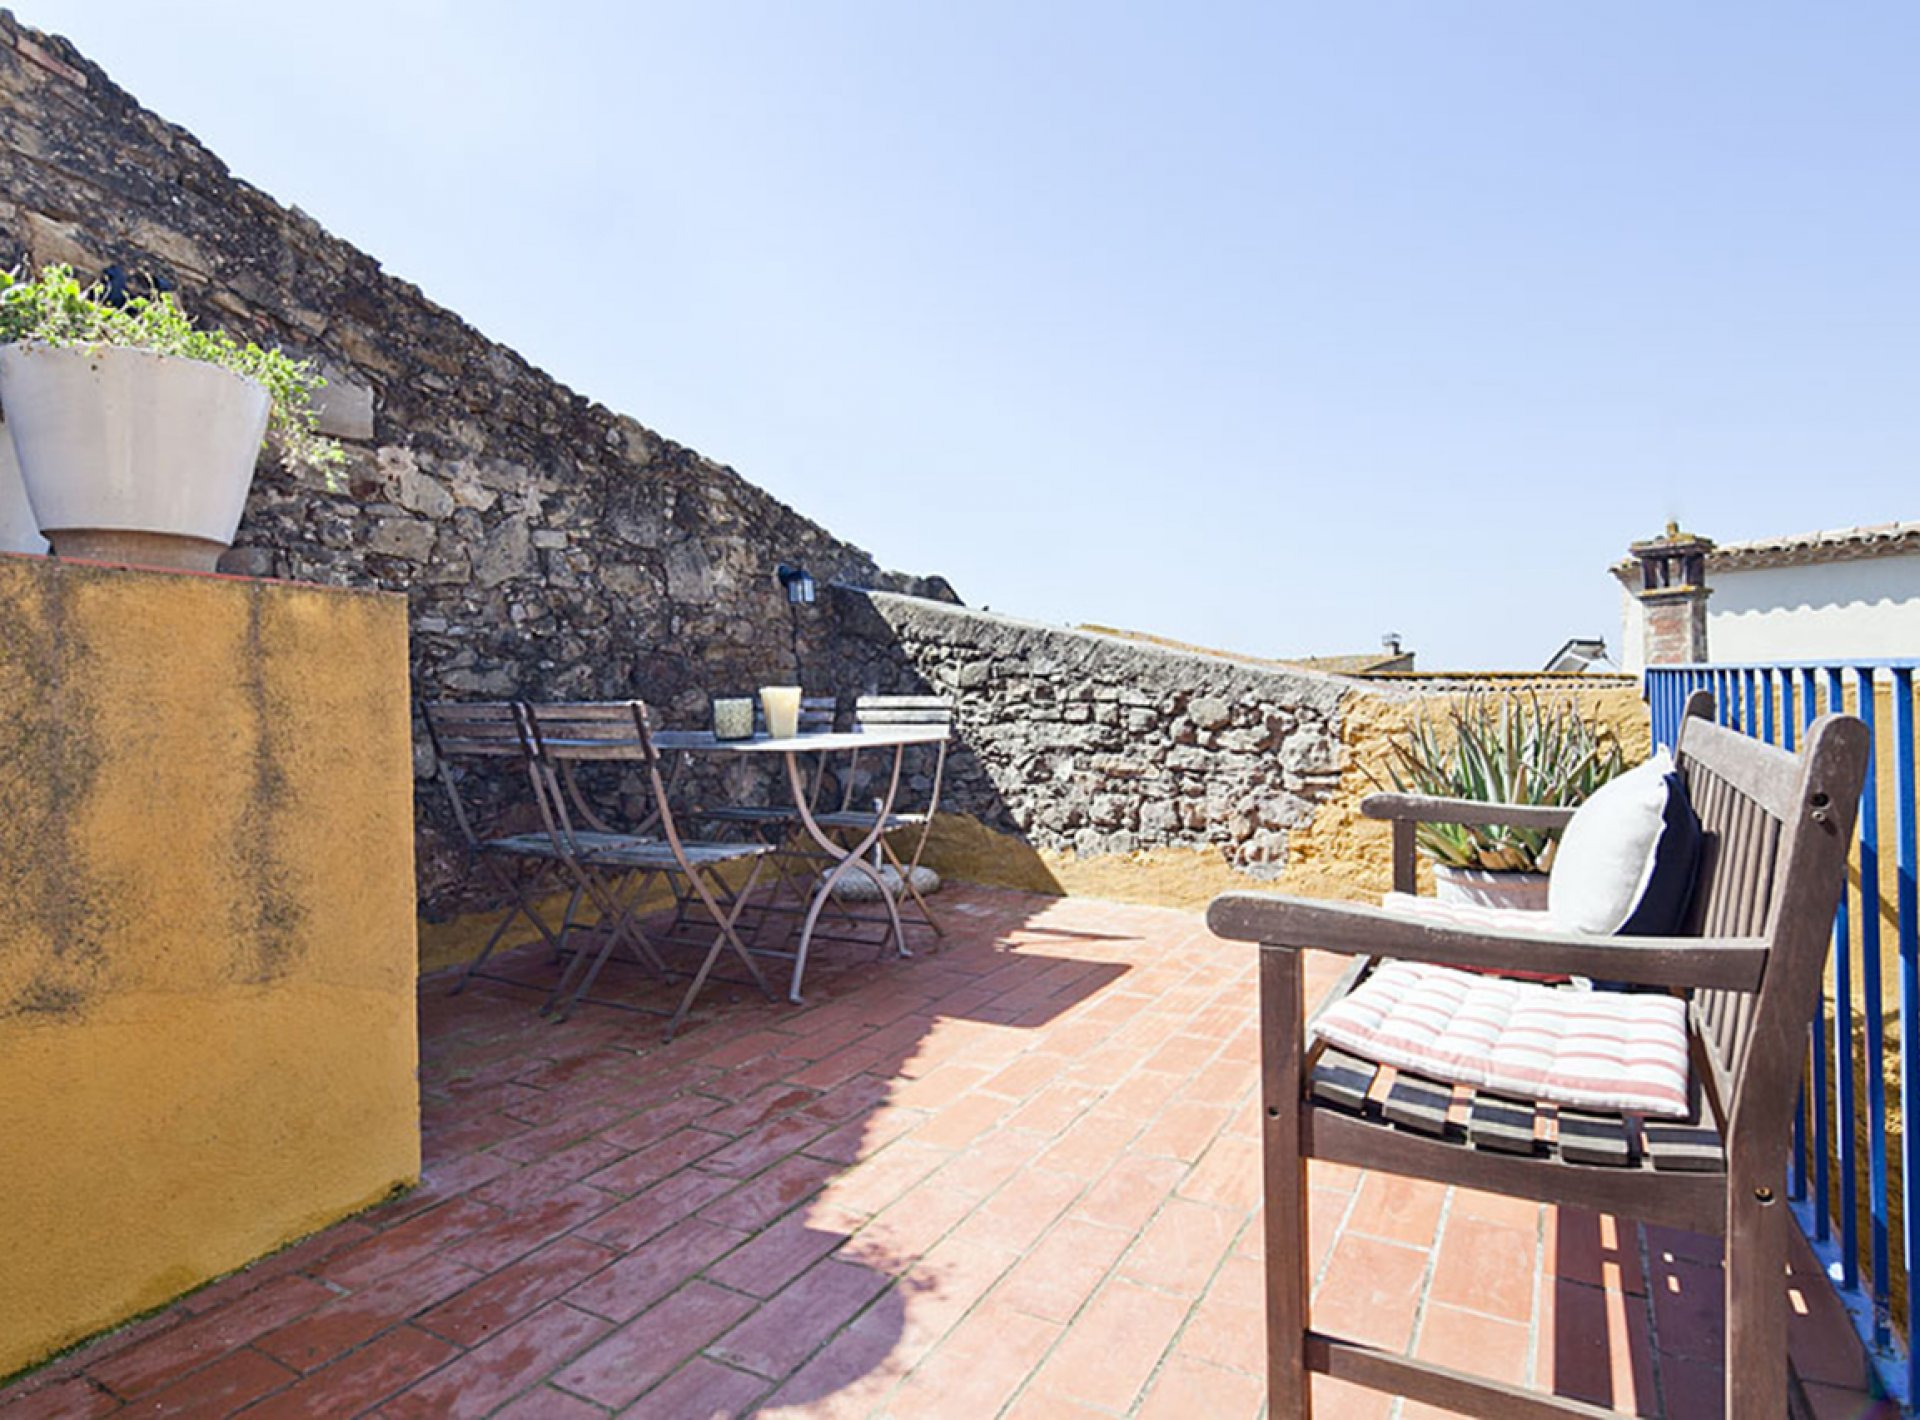 2 Bedroom Holiday Villa to Rent with Pool in Costa Brava